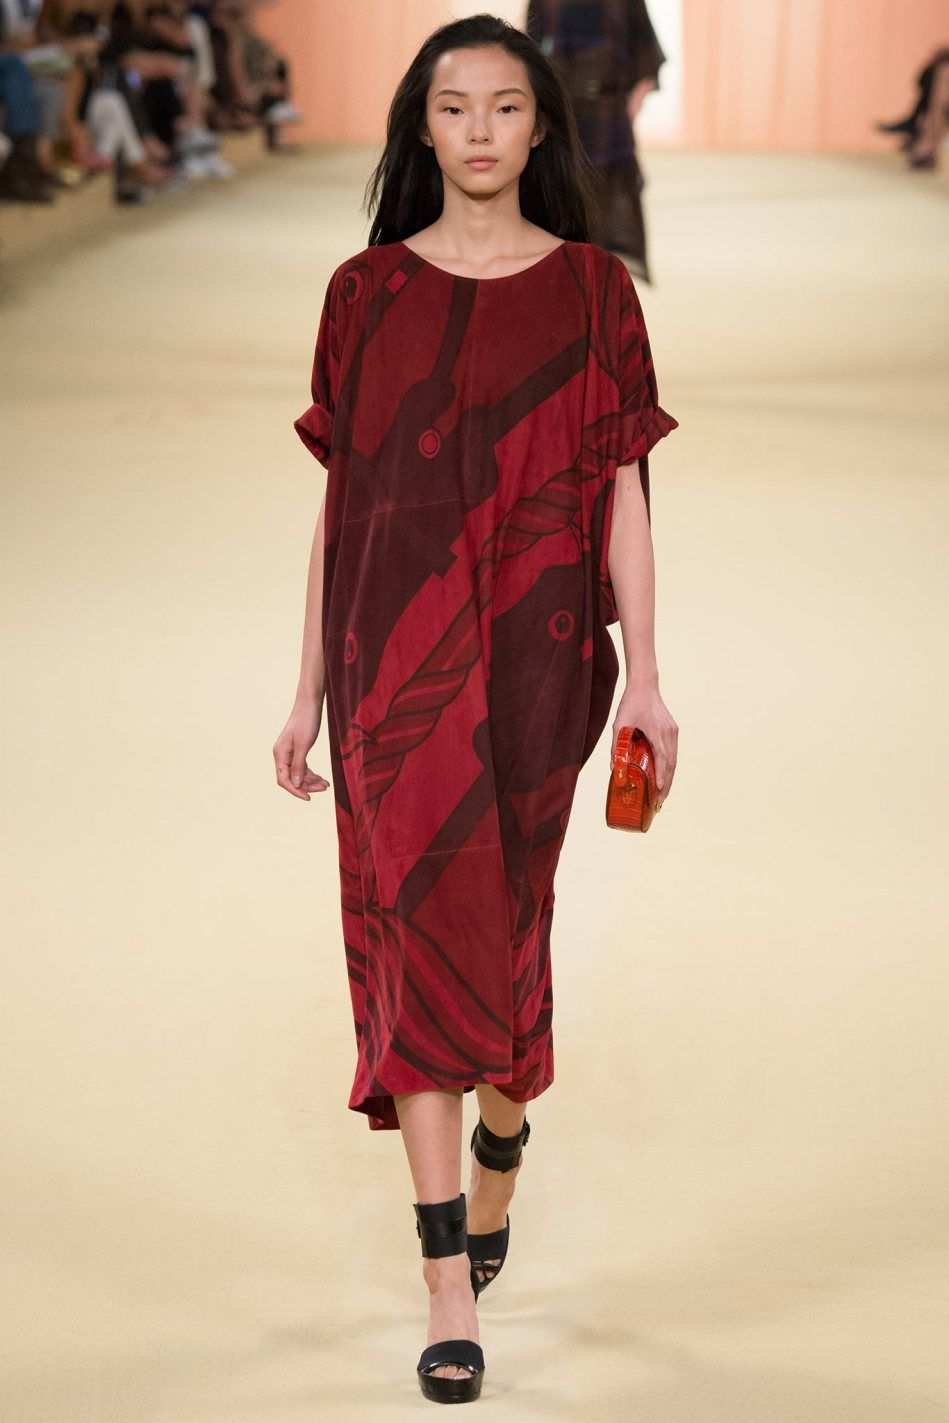 018SS15-HERMES-trend council-10114